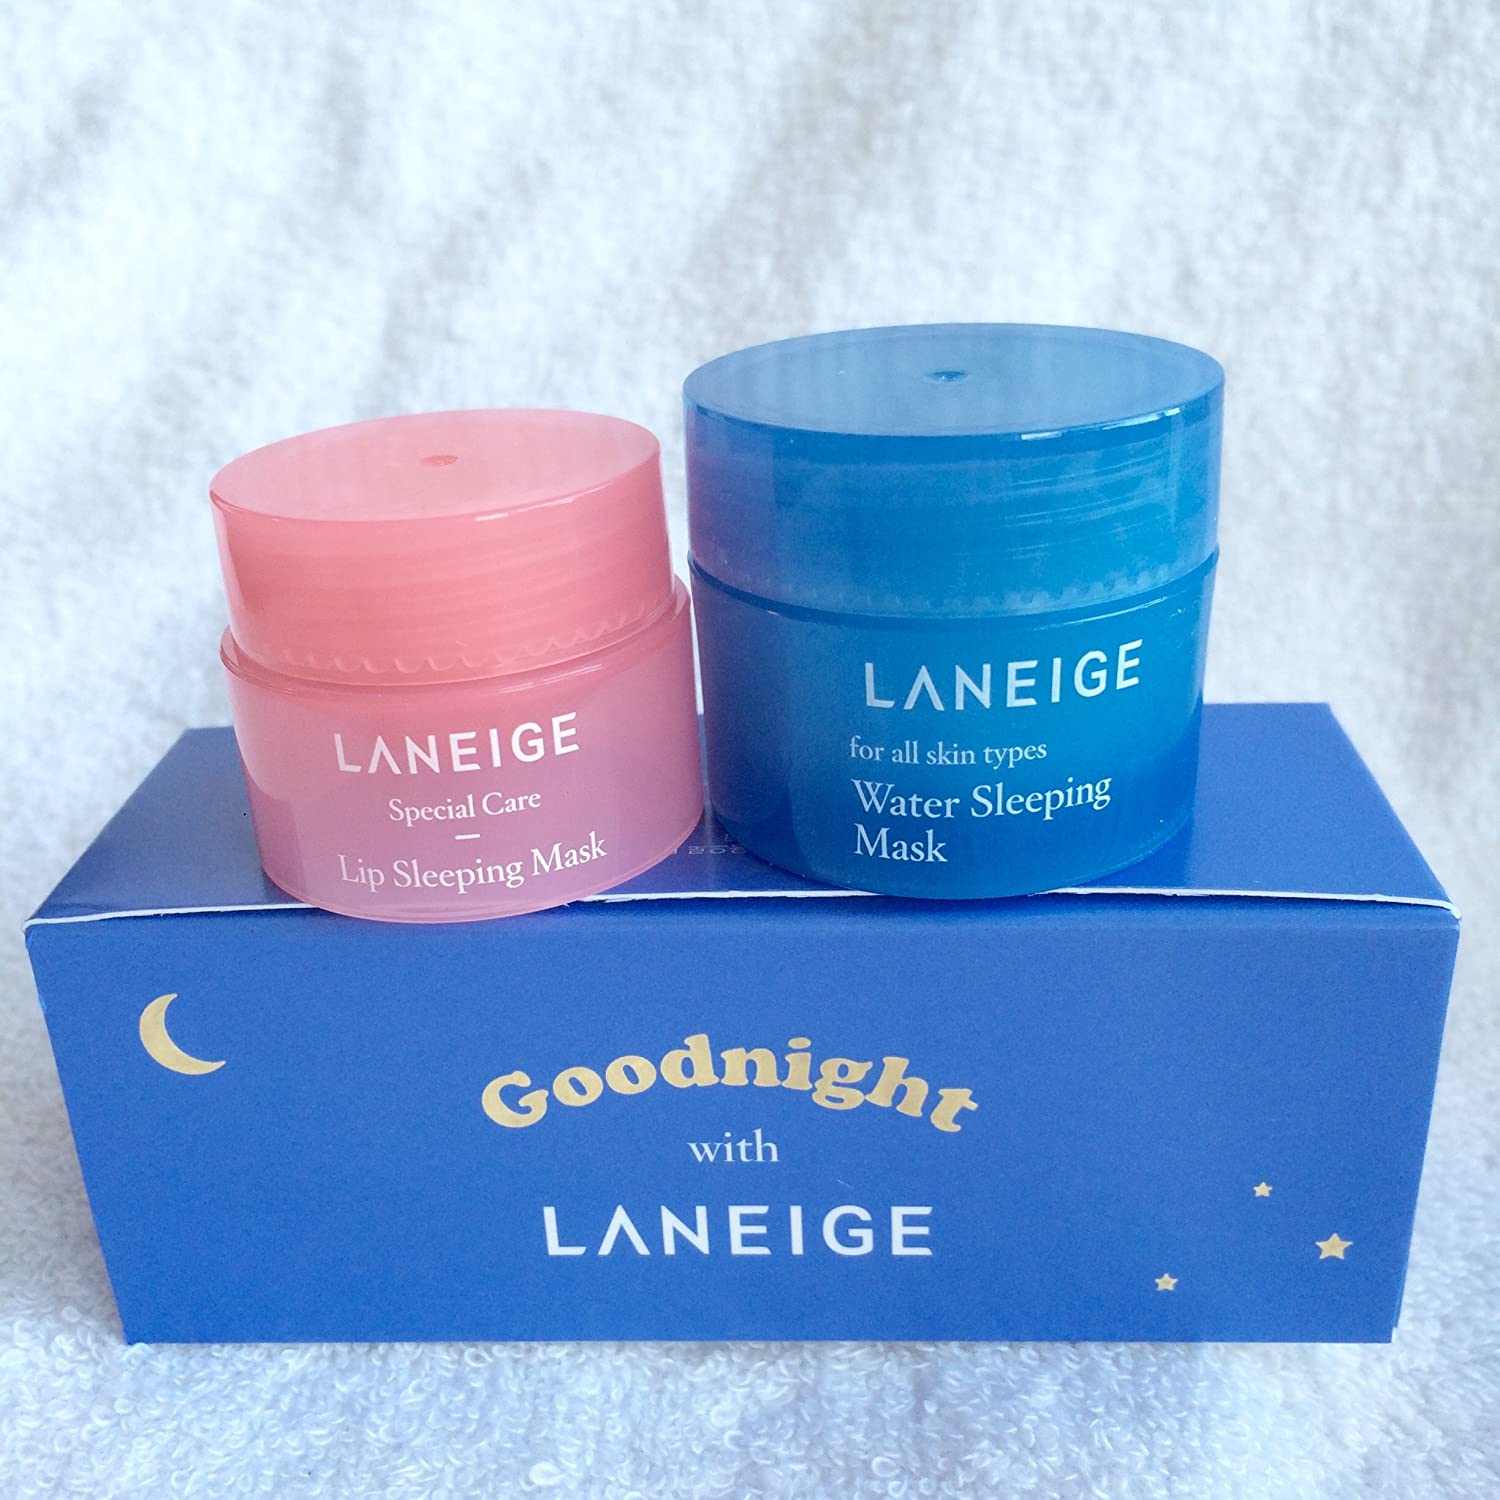 Laneige Goodnight Sleeping Care Kit (Water Sleeping Mask 15Ml + Lip Sleeping Mask 3G)